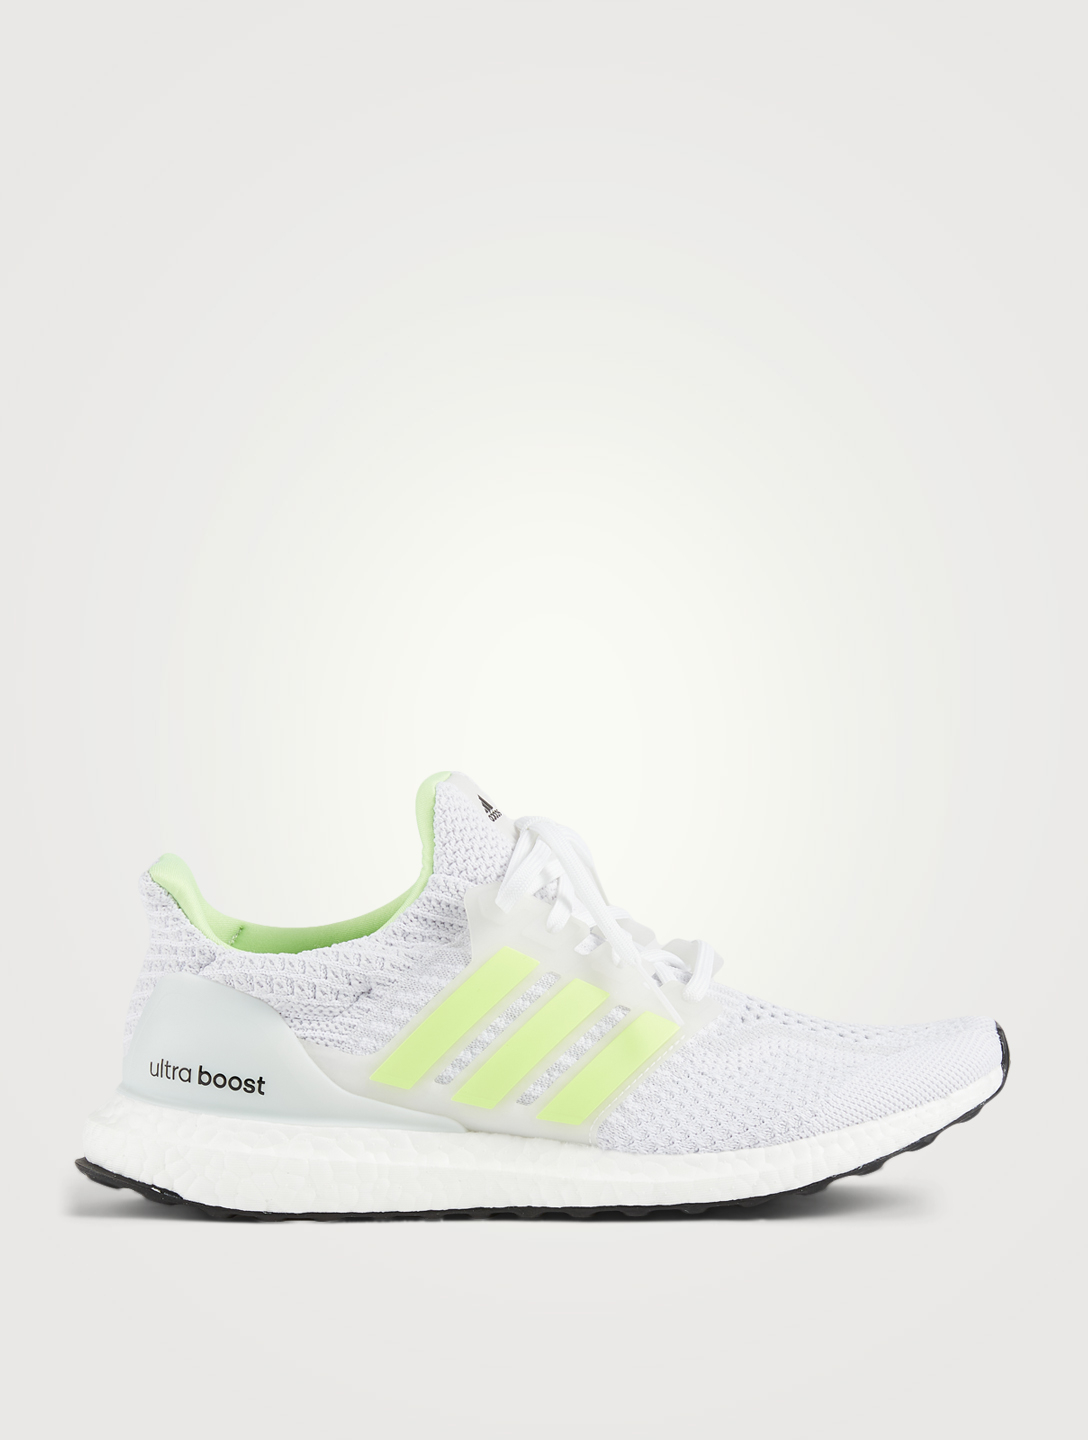 ADIDAS Ultraboost 5.0 DNA Glow Primeknit Running Shoes Men's White